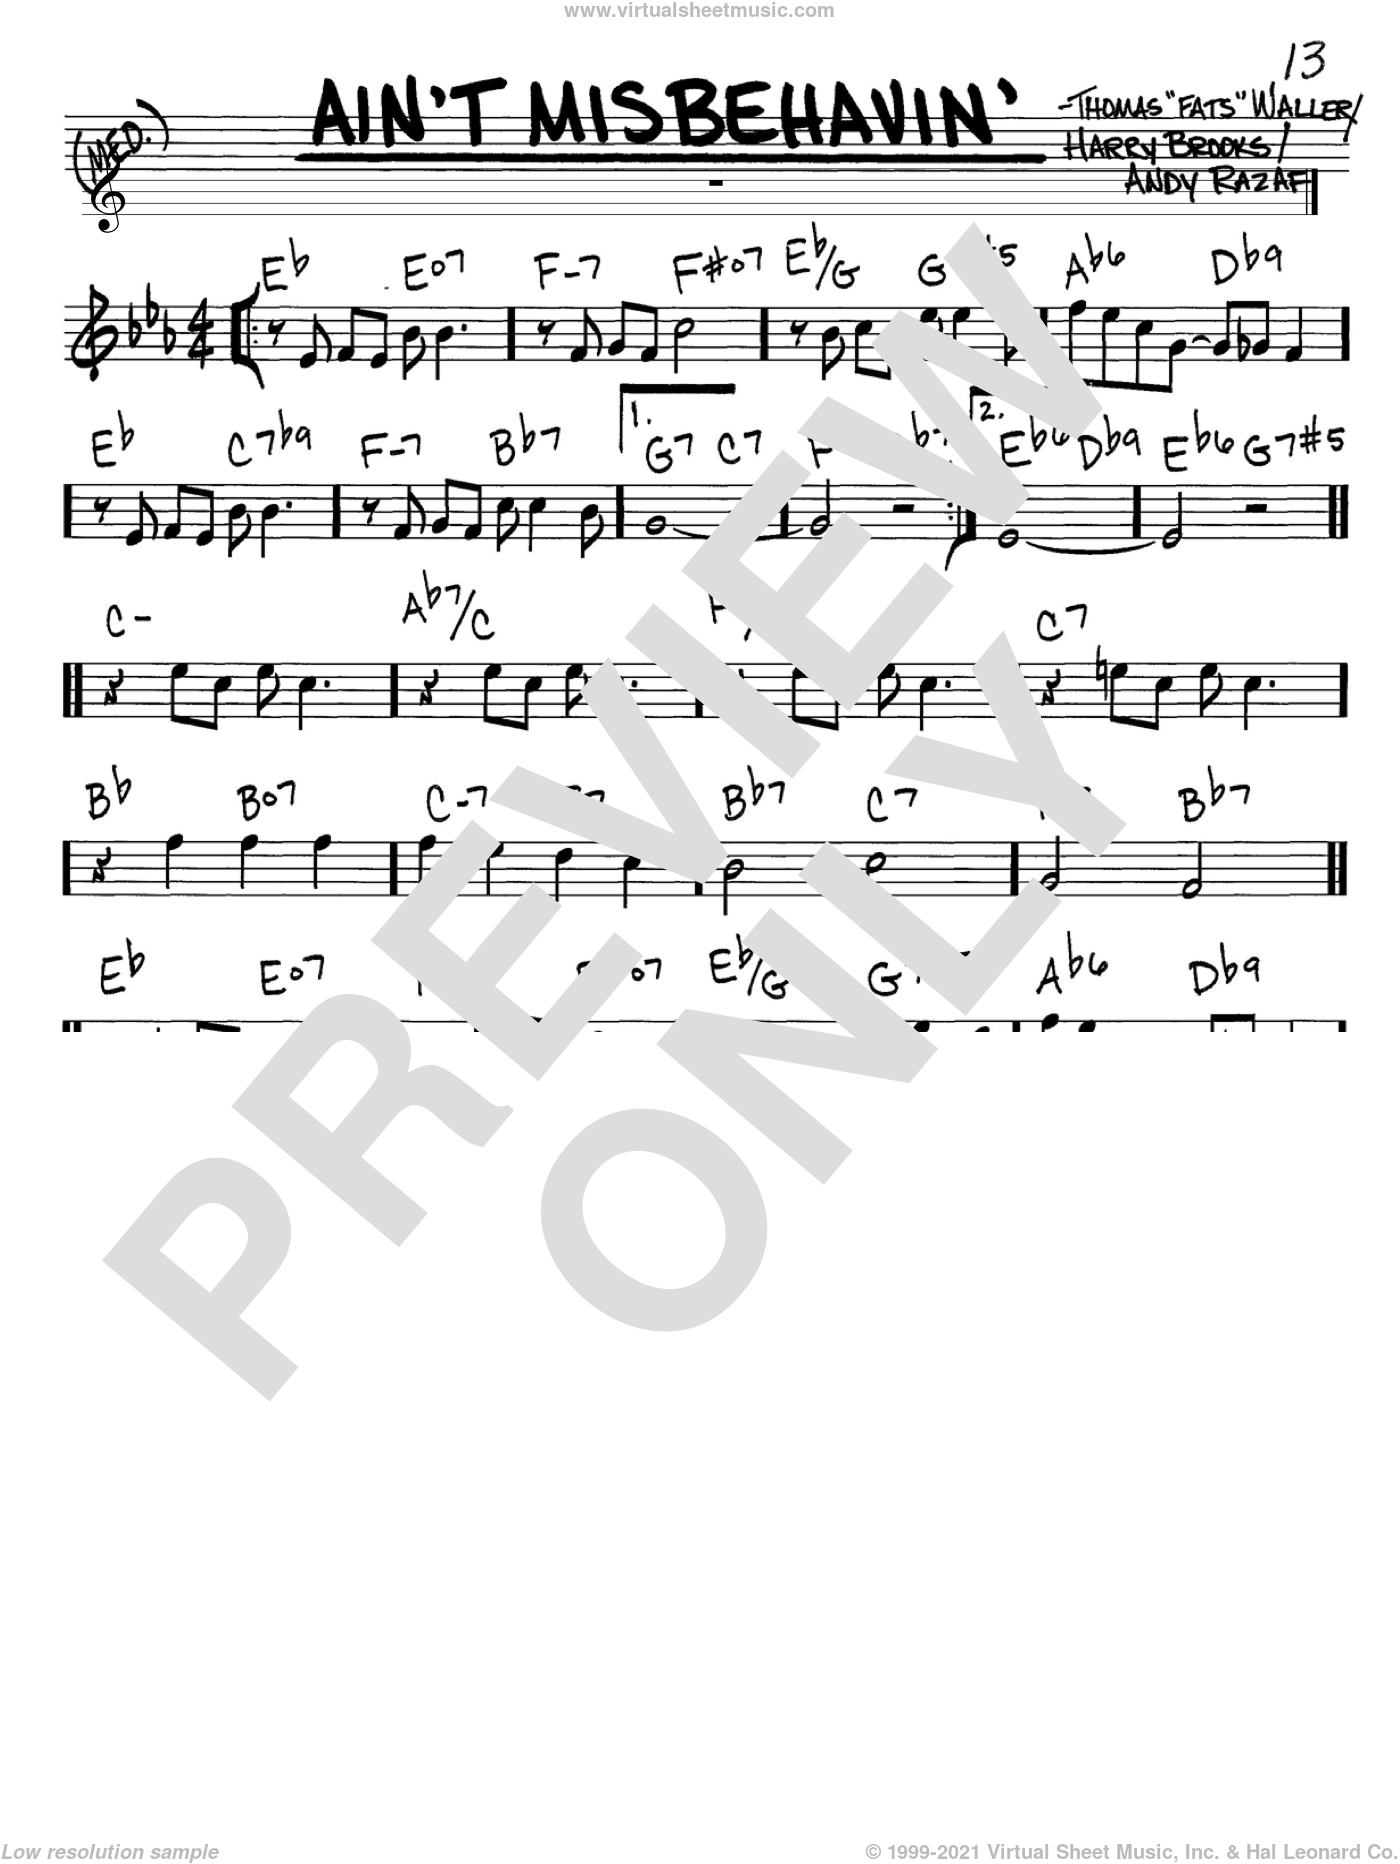 Ain't Misbehavin' sheet music for voice and other instruments (C) by Fats Waller, Thomas Waller, Andy Razaf and Harry Brooks. Score Image Preview.